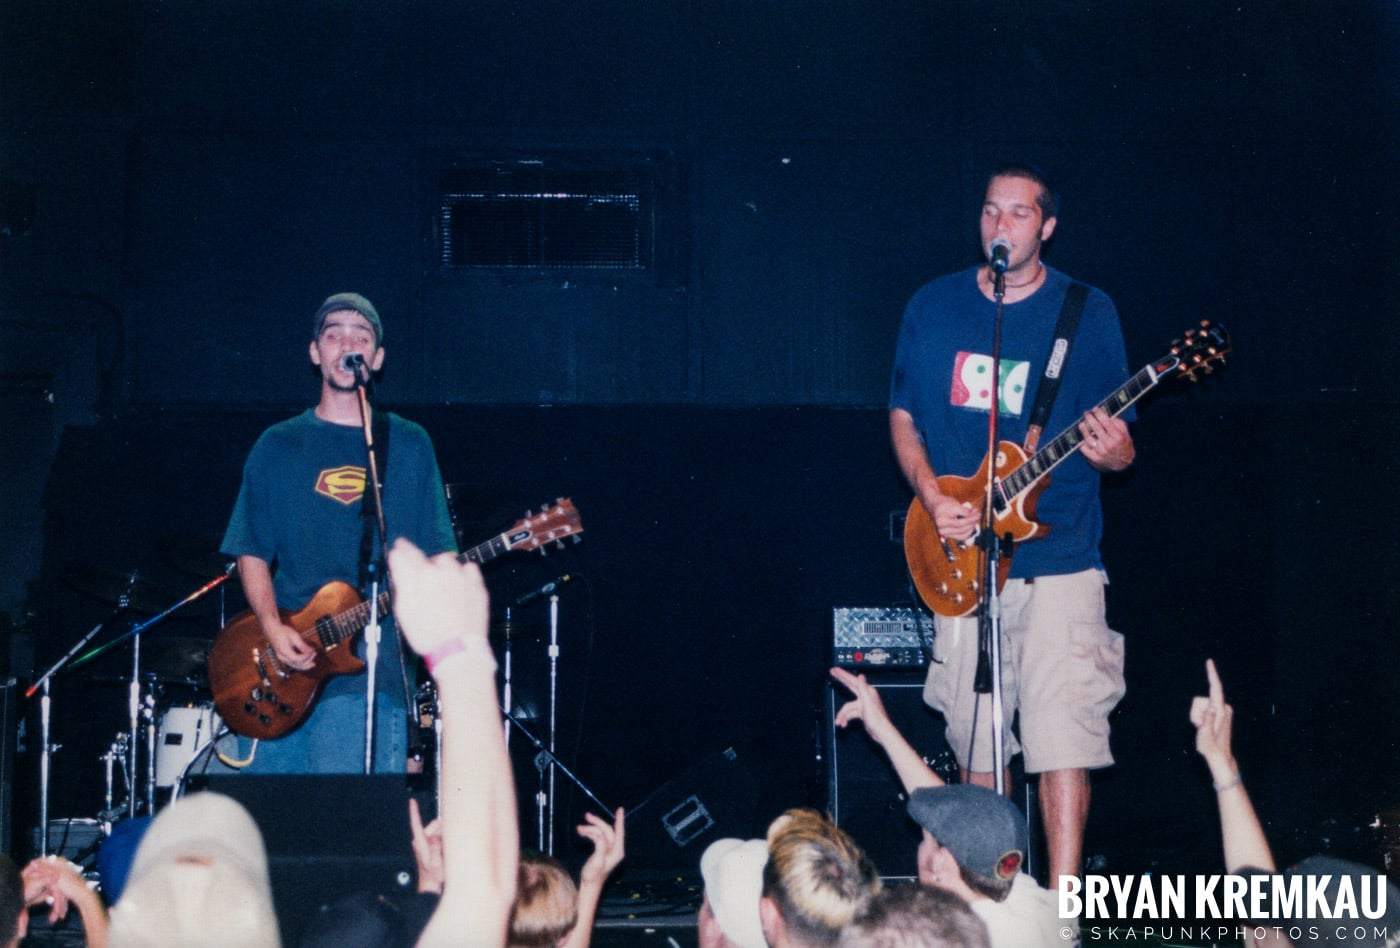 Lounge @ The Chance, Poughkeepsie, NY - 7.17.98 (5)